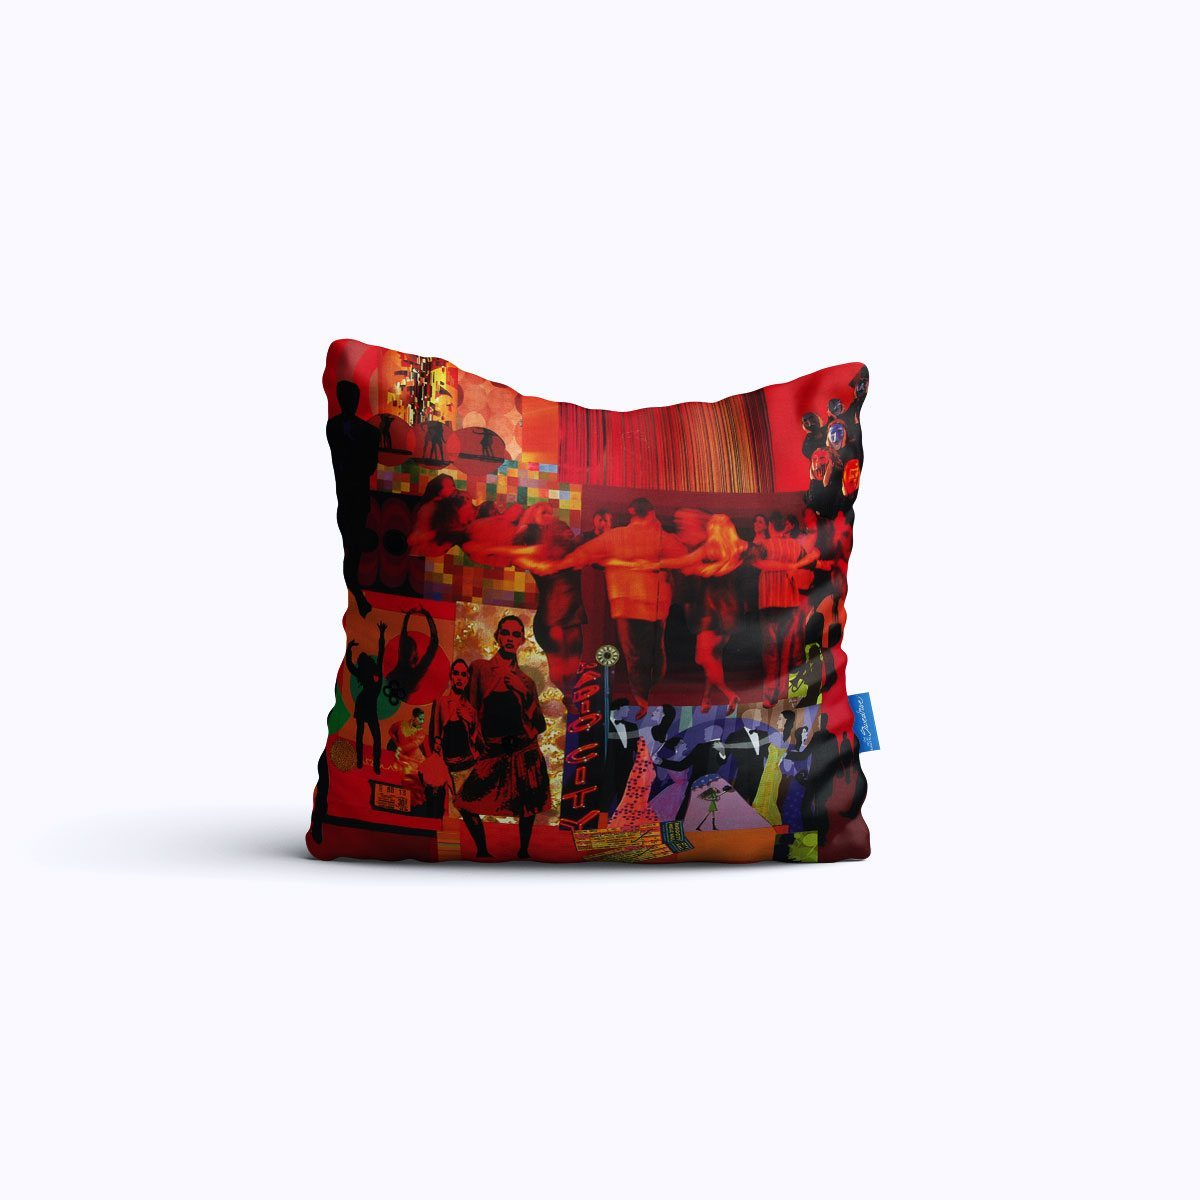 RMS002-Riverdance – Throw Pillow – Swedroe Licensing